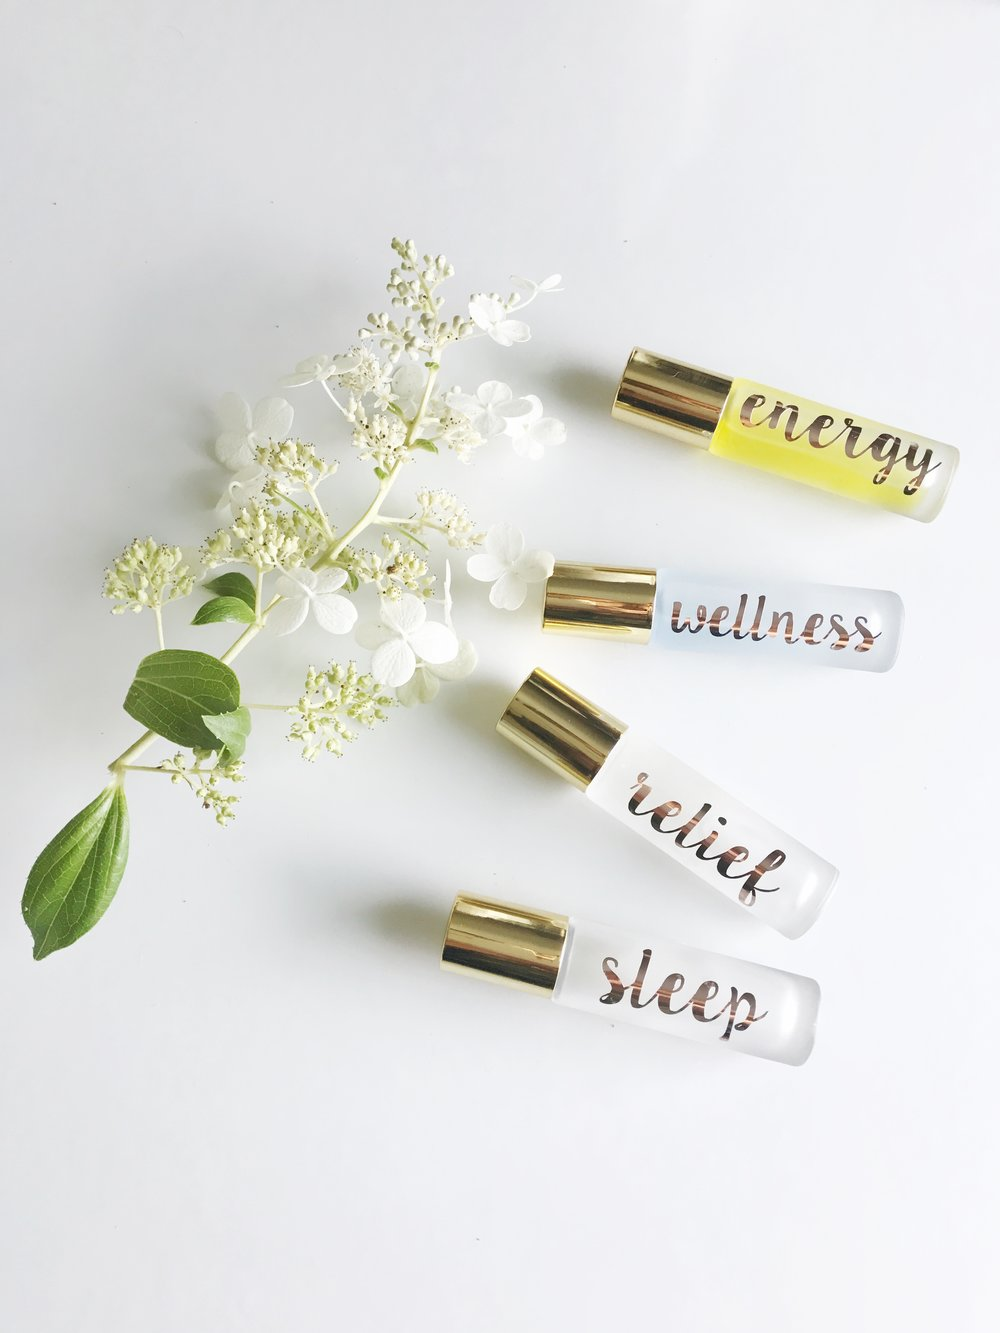 My sleep blend helps everyone in my family. Relief for sore muscles. Wellness for my hormones. Energy for long road trips!